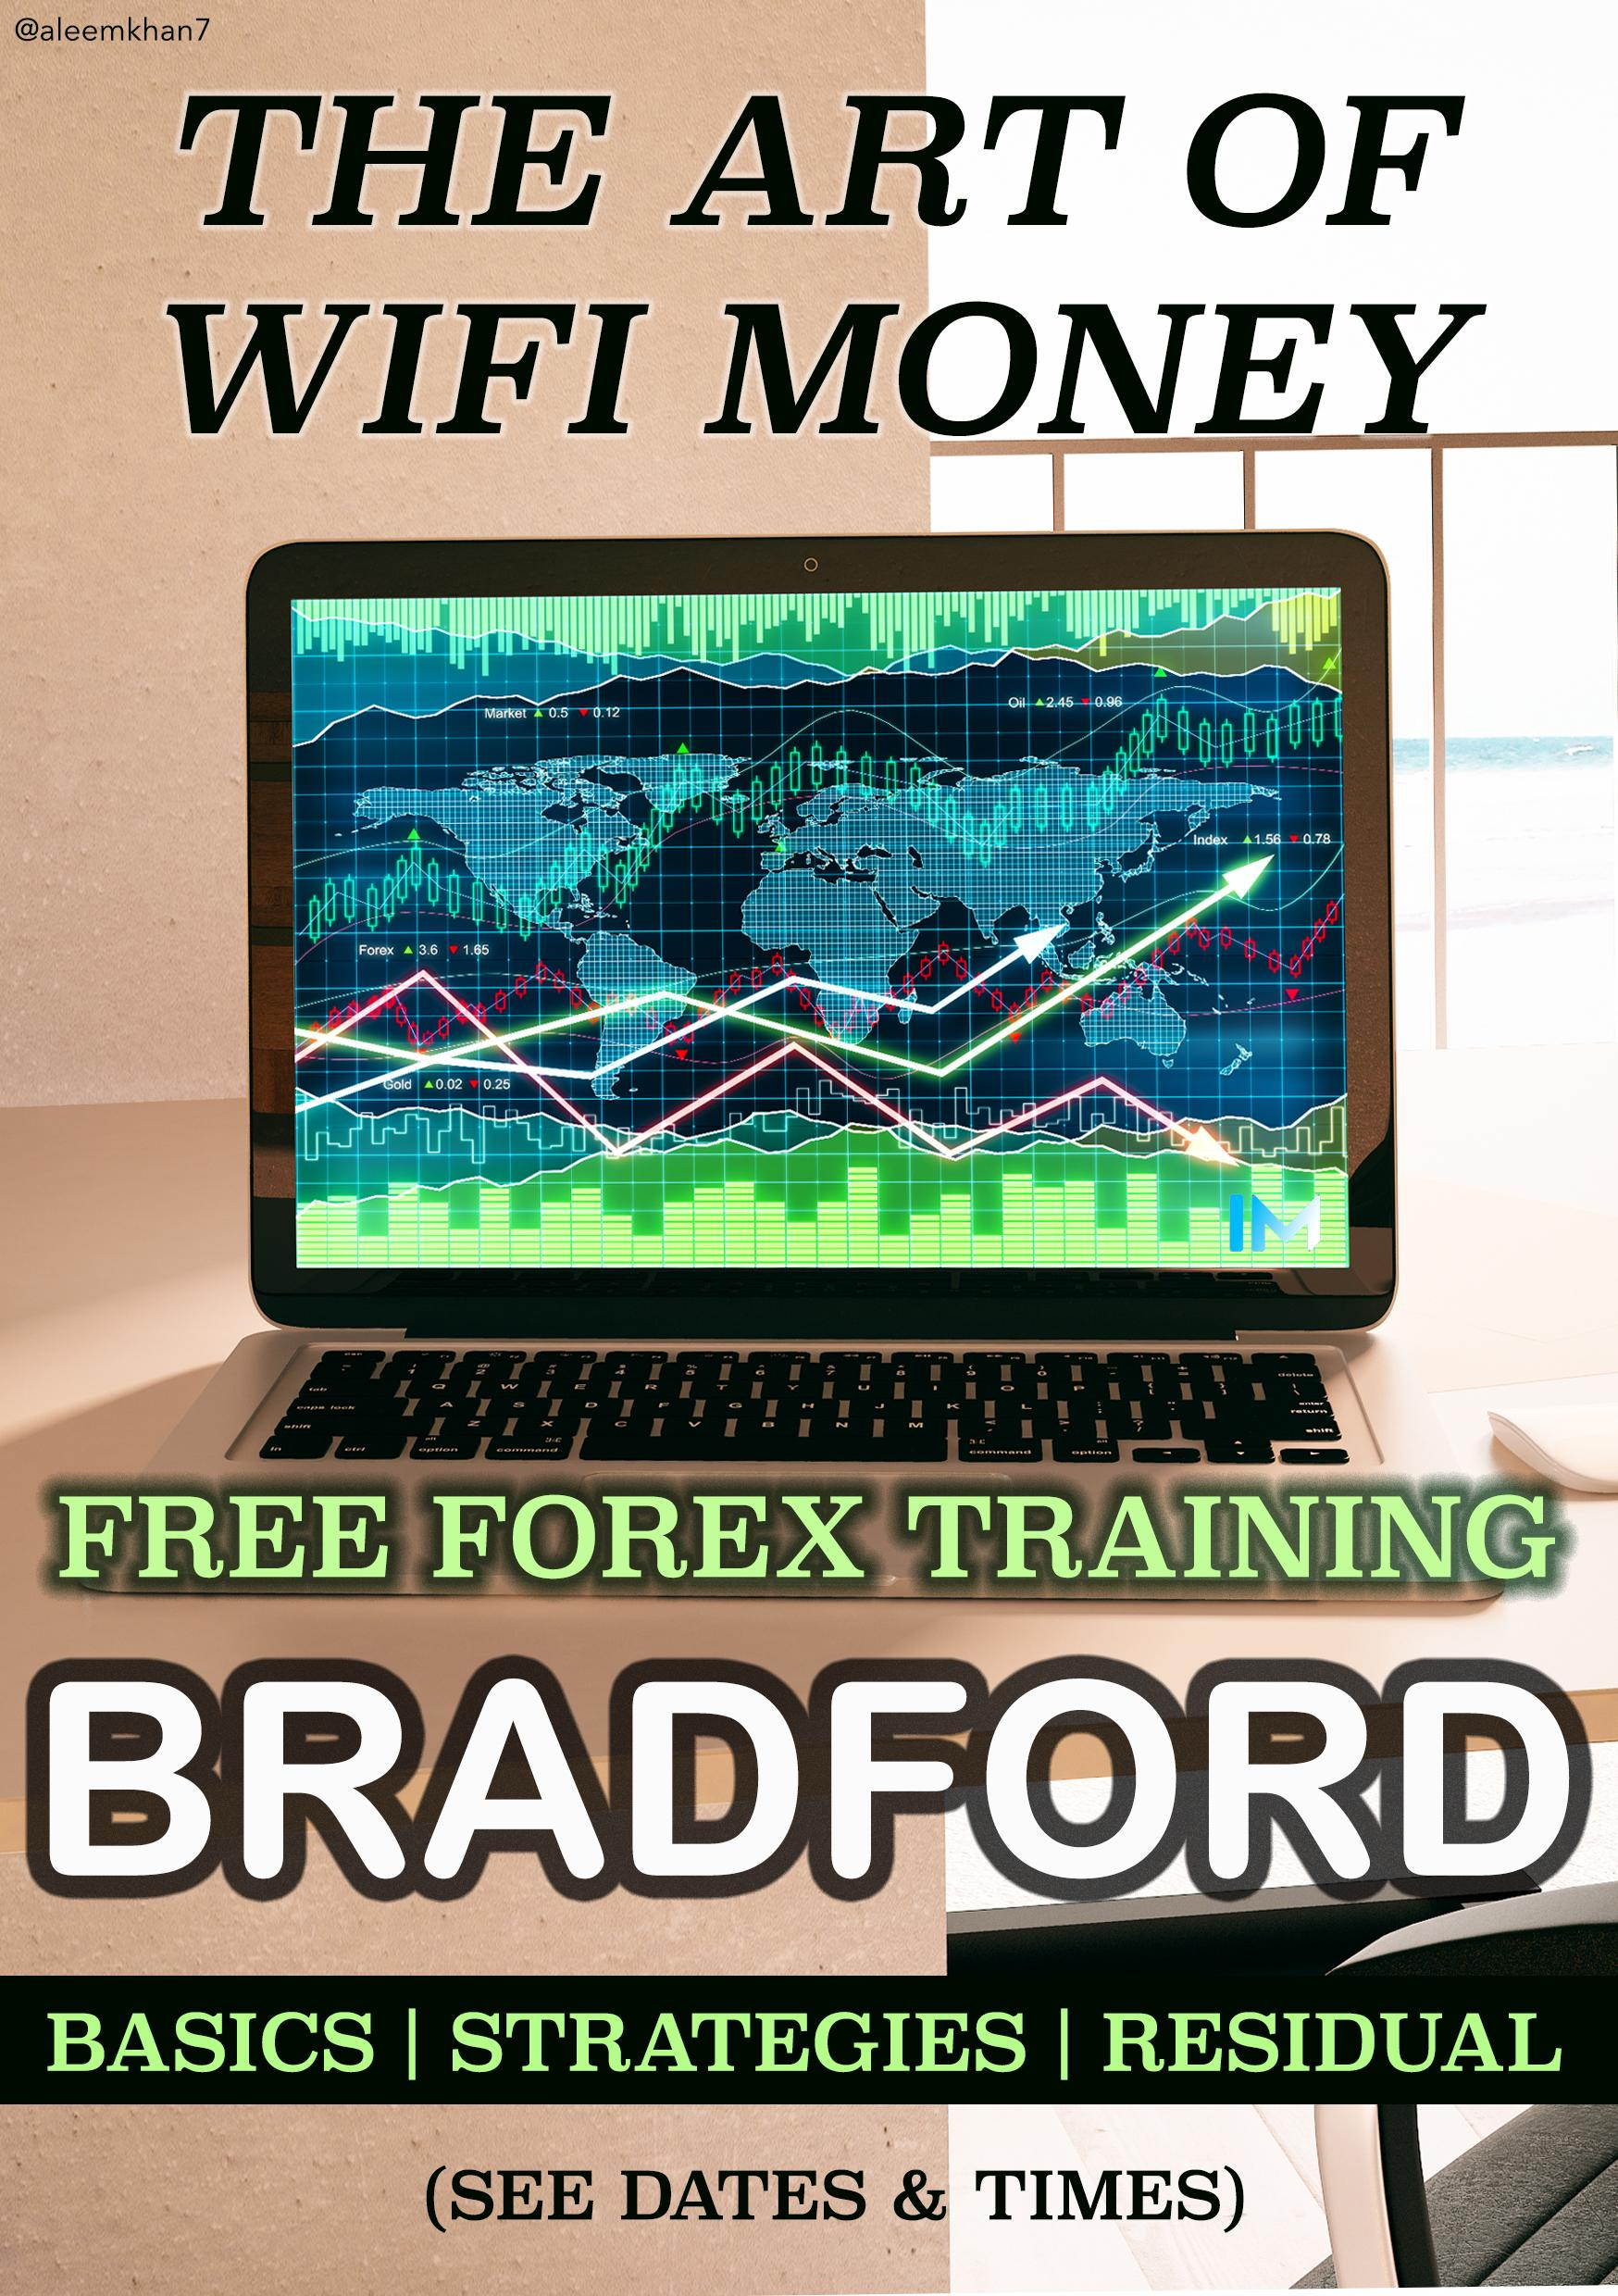 LEARN THE ART OF WIFI MONEY | FREE FOREX CLASS